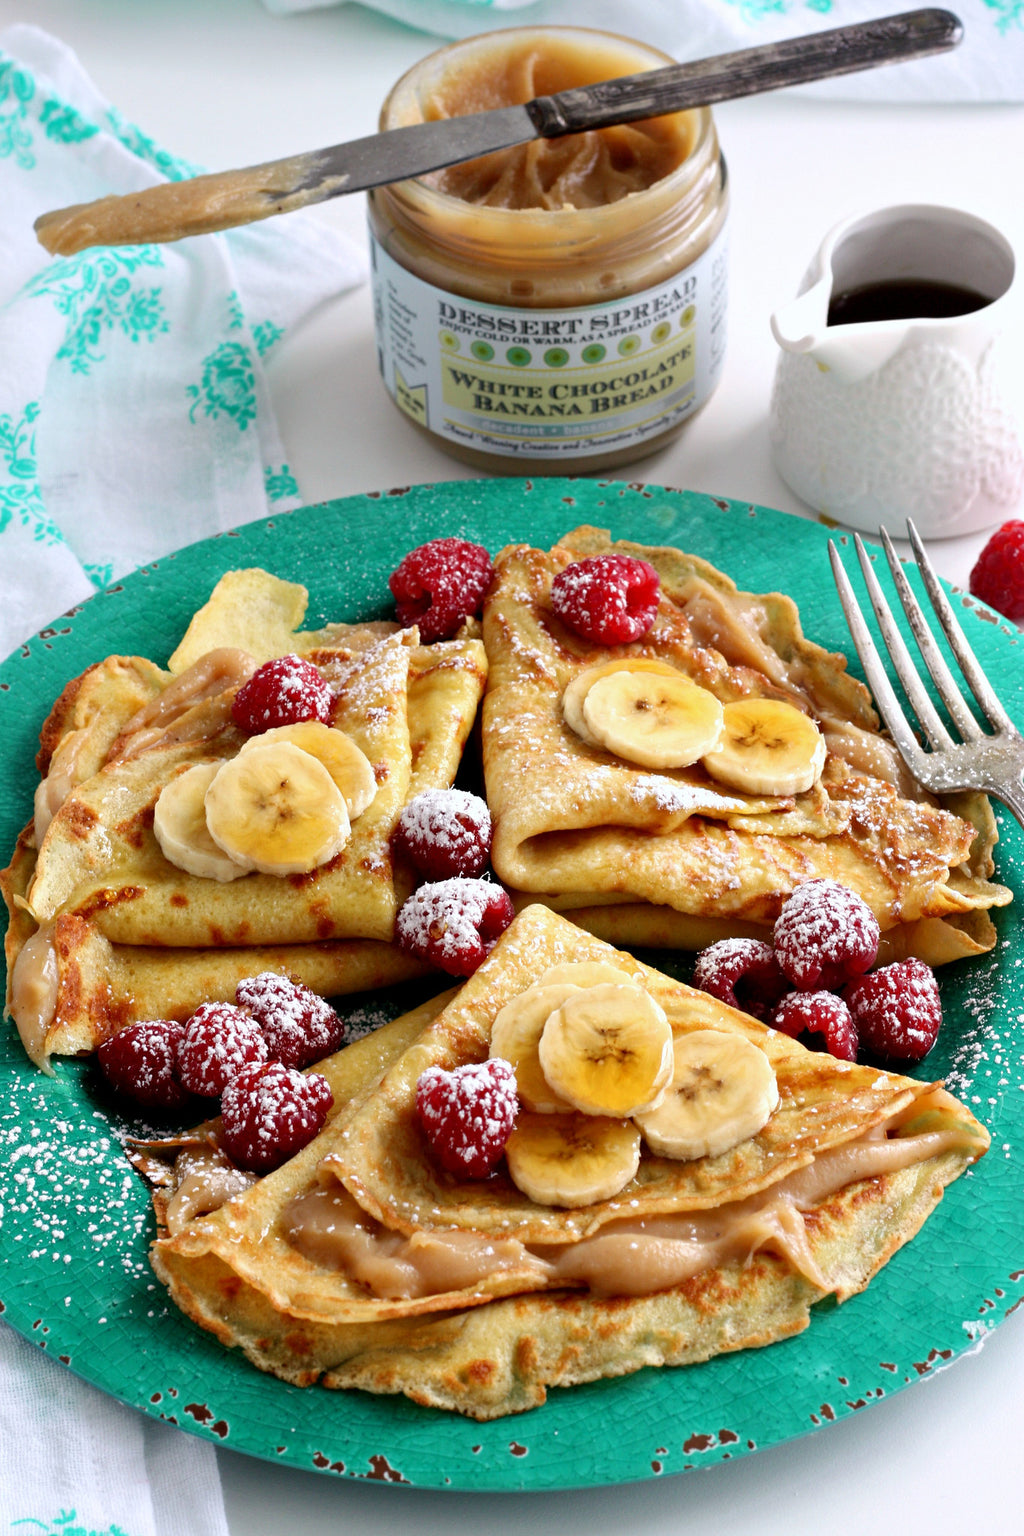 Crepes with White Chocolate Banana Bread Dessert Spread